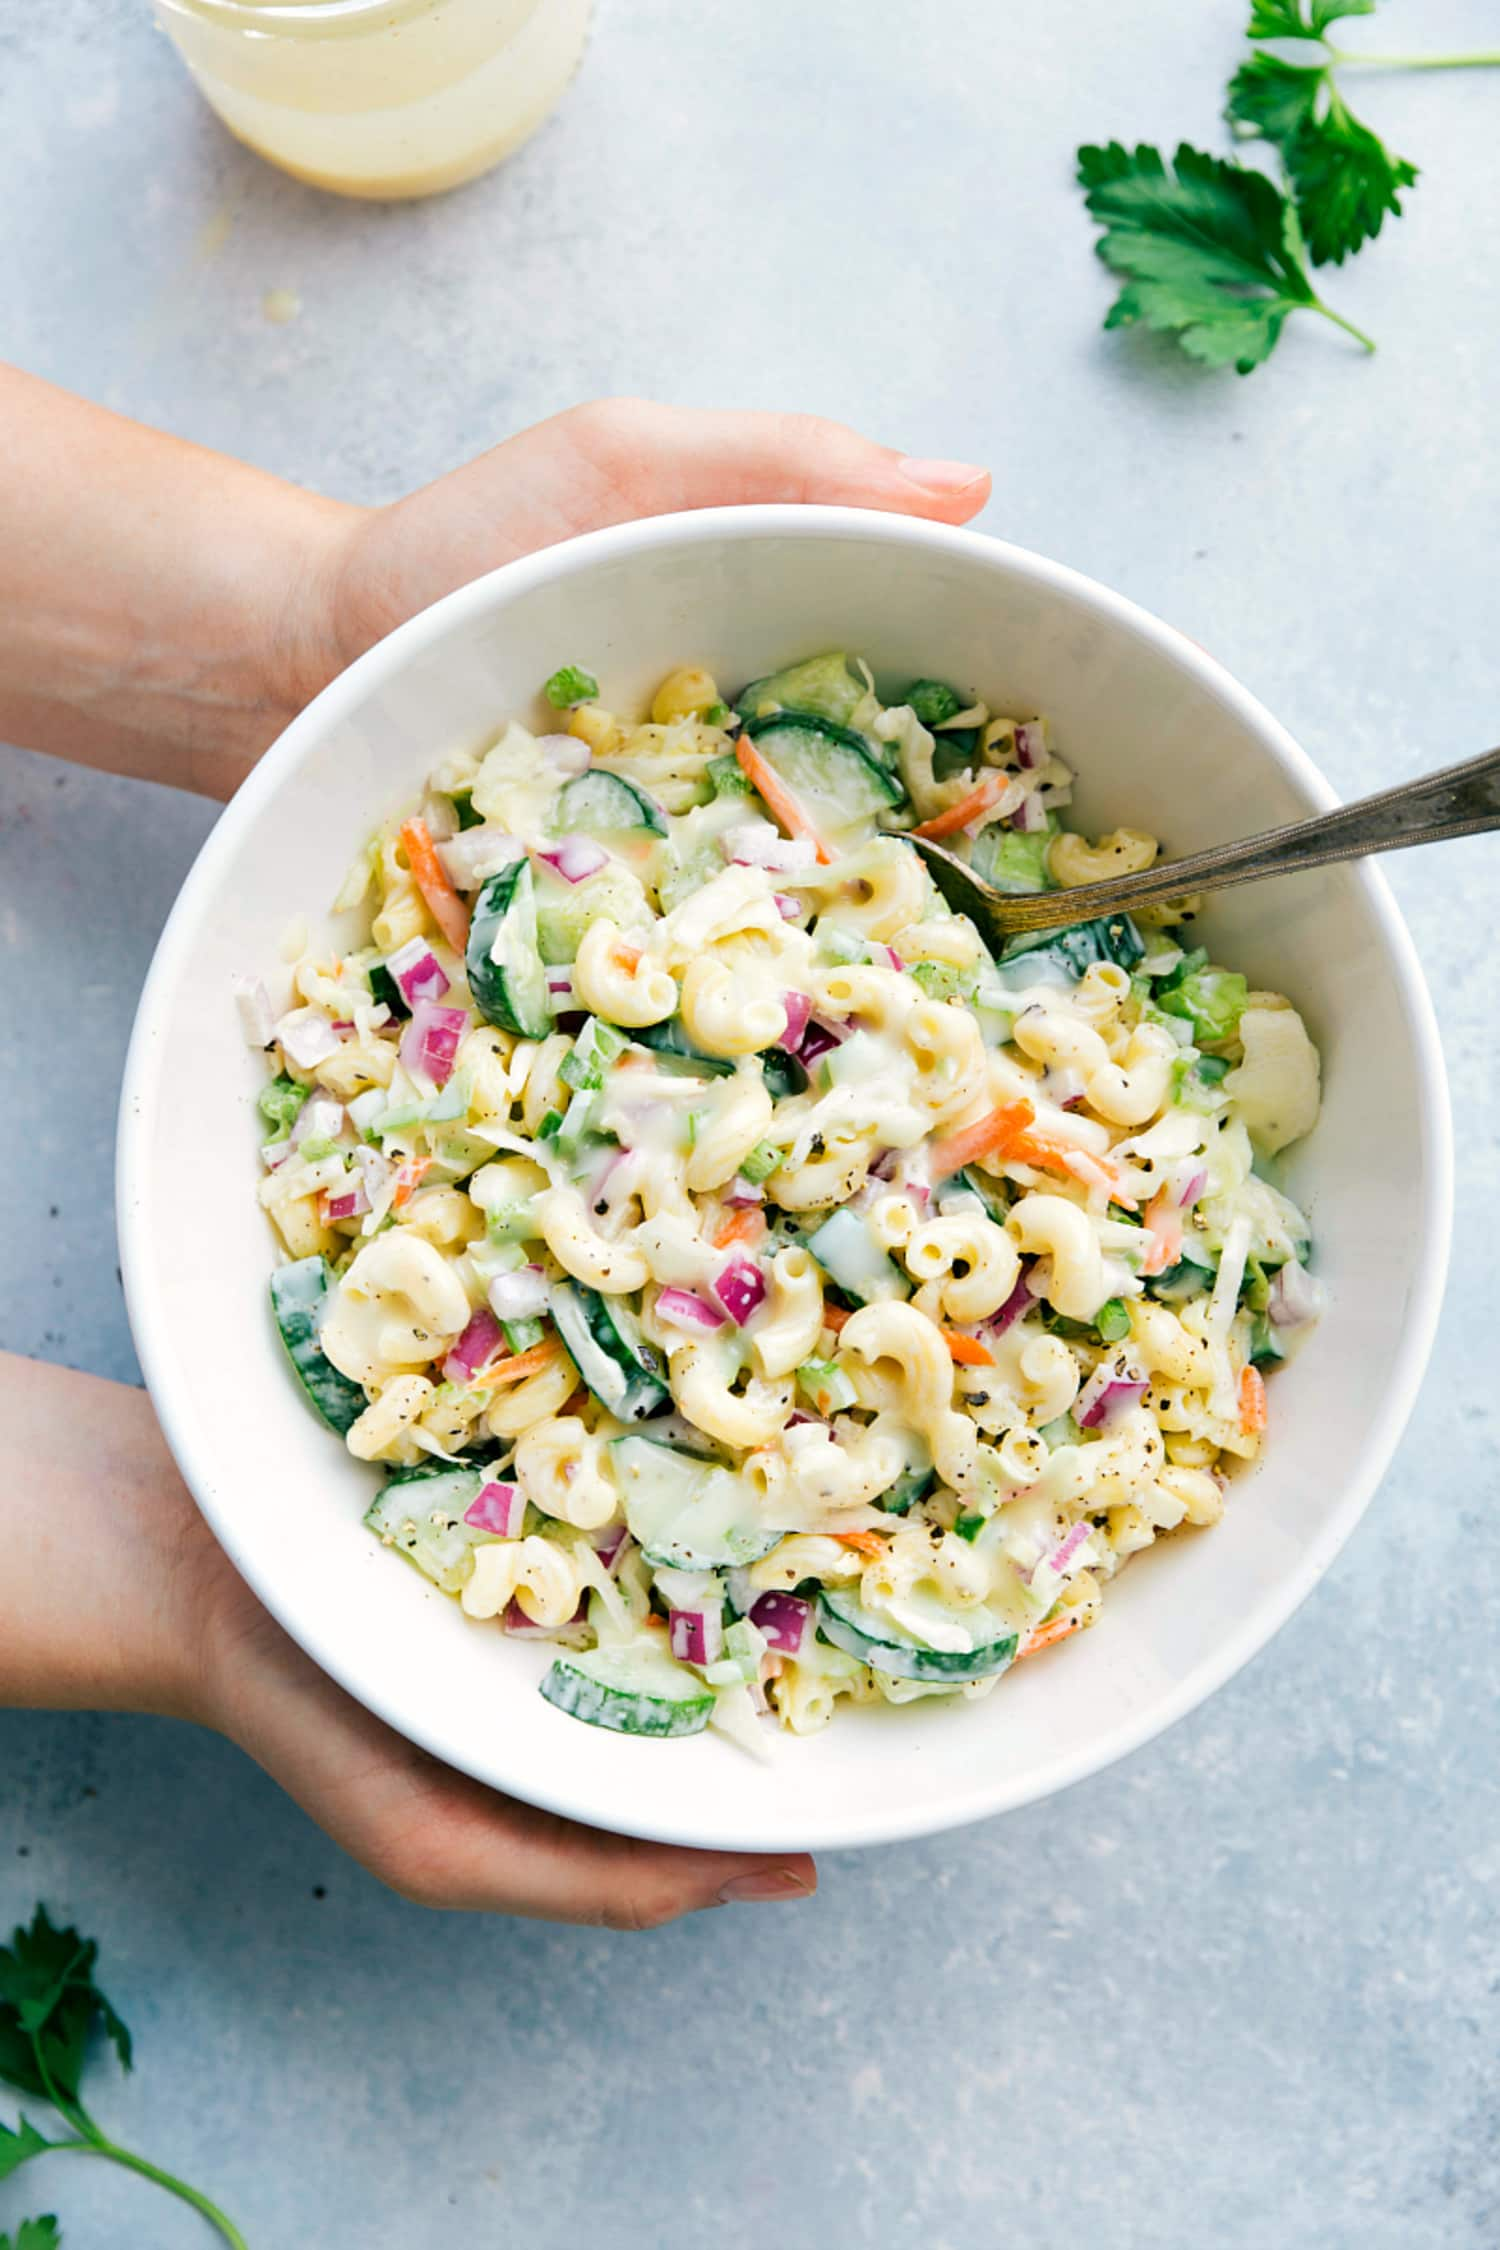 This Macaroni Coleslaw Salad Is the Ultimate Cookout Side Dish